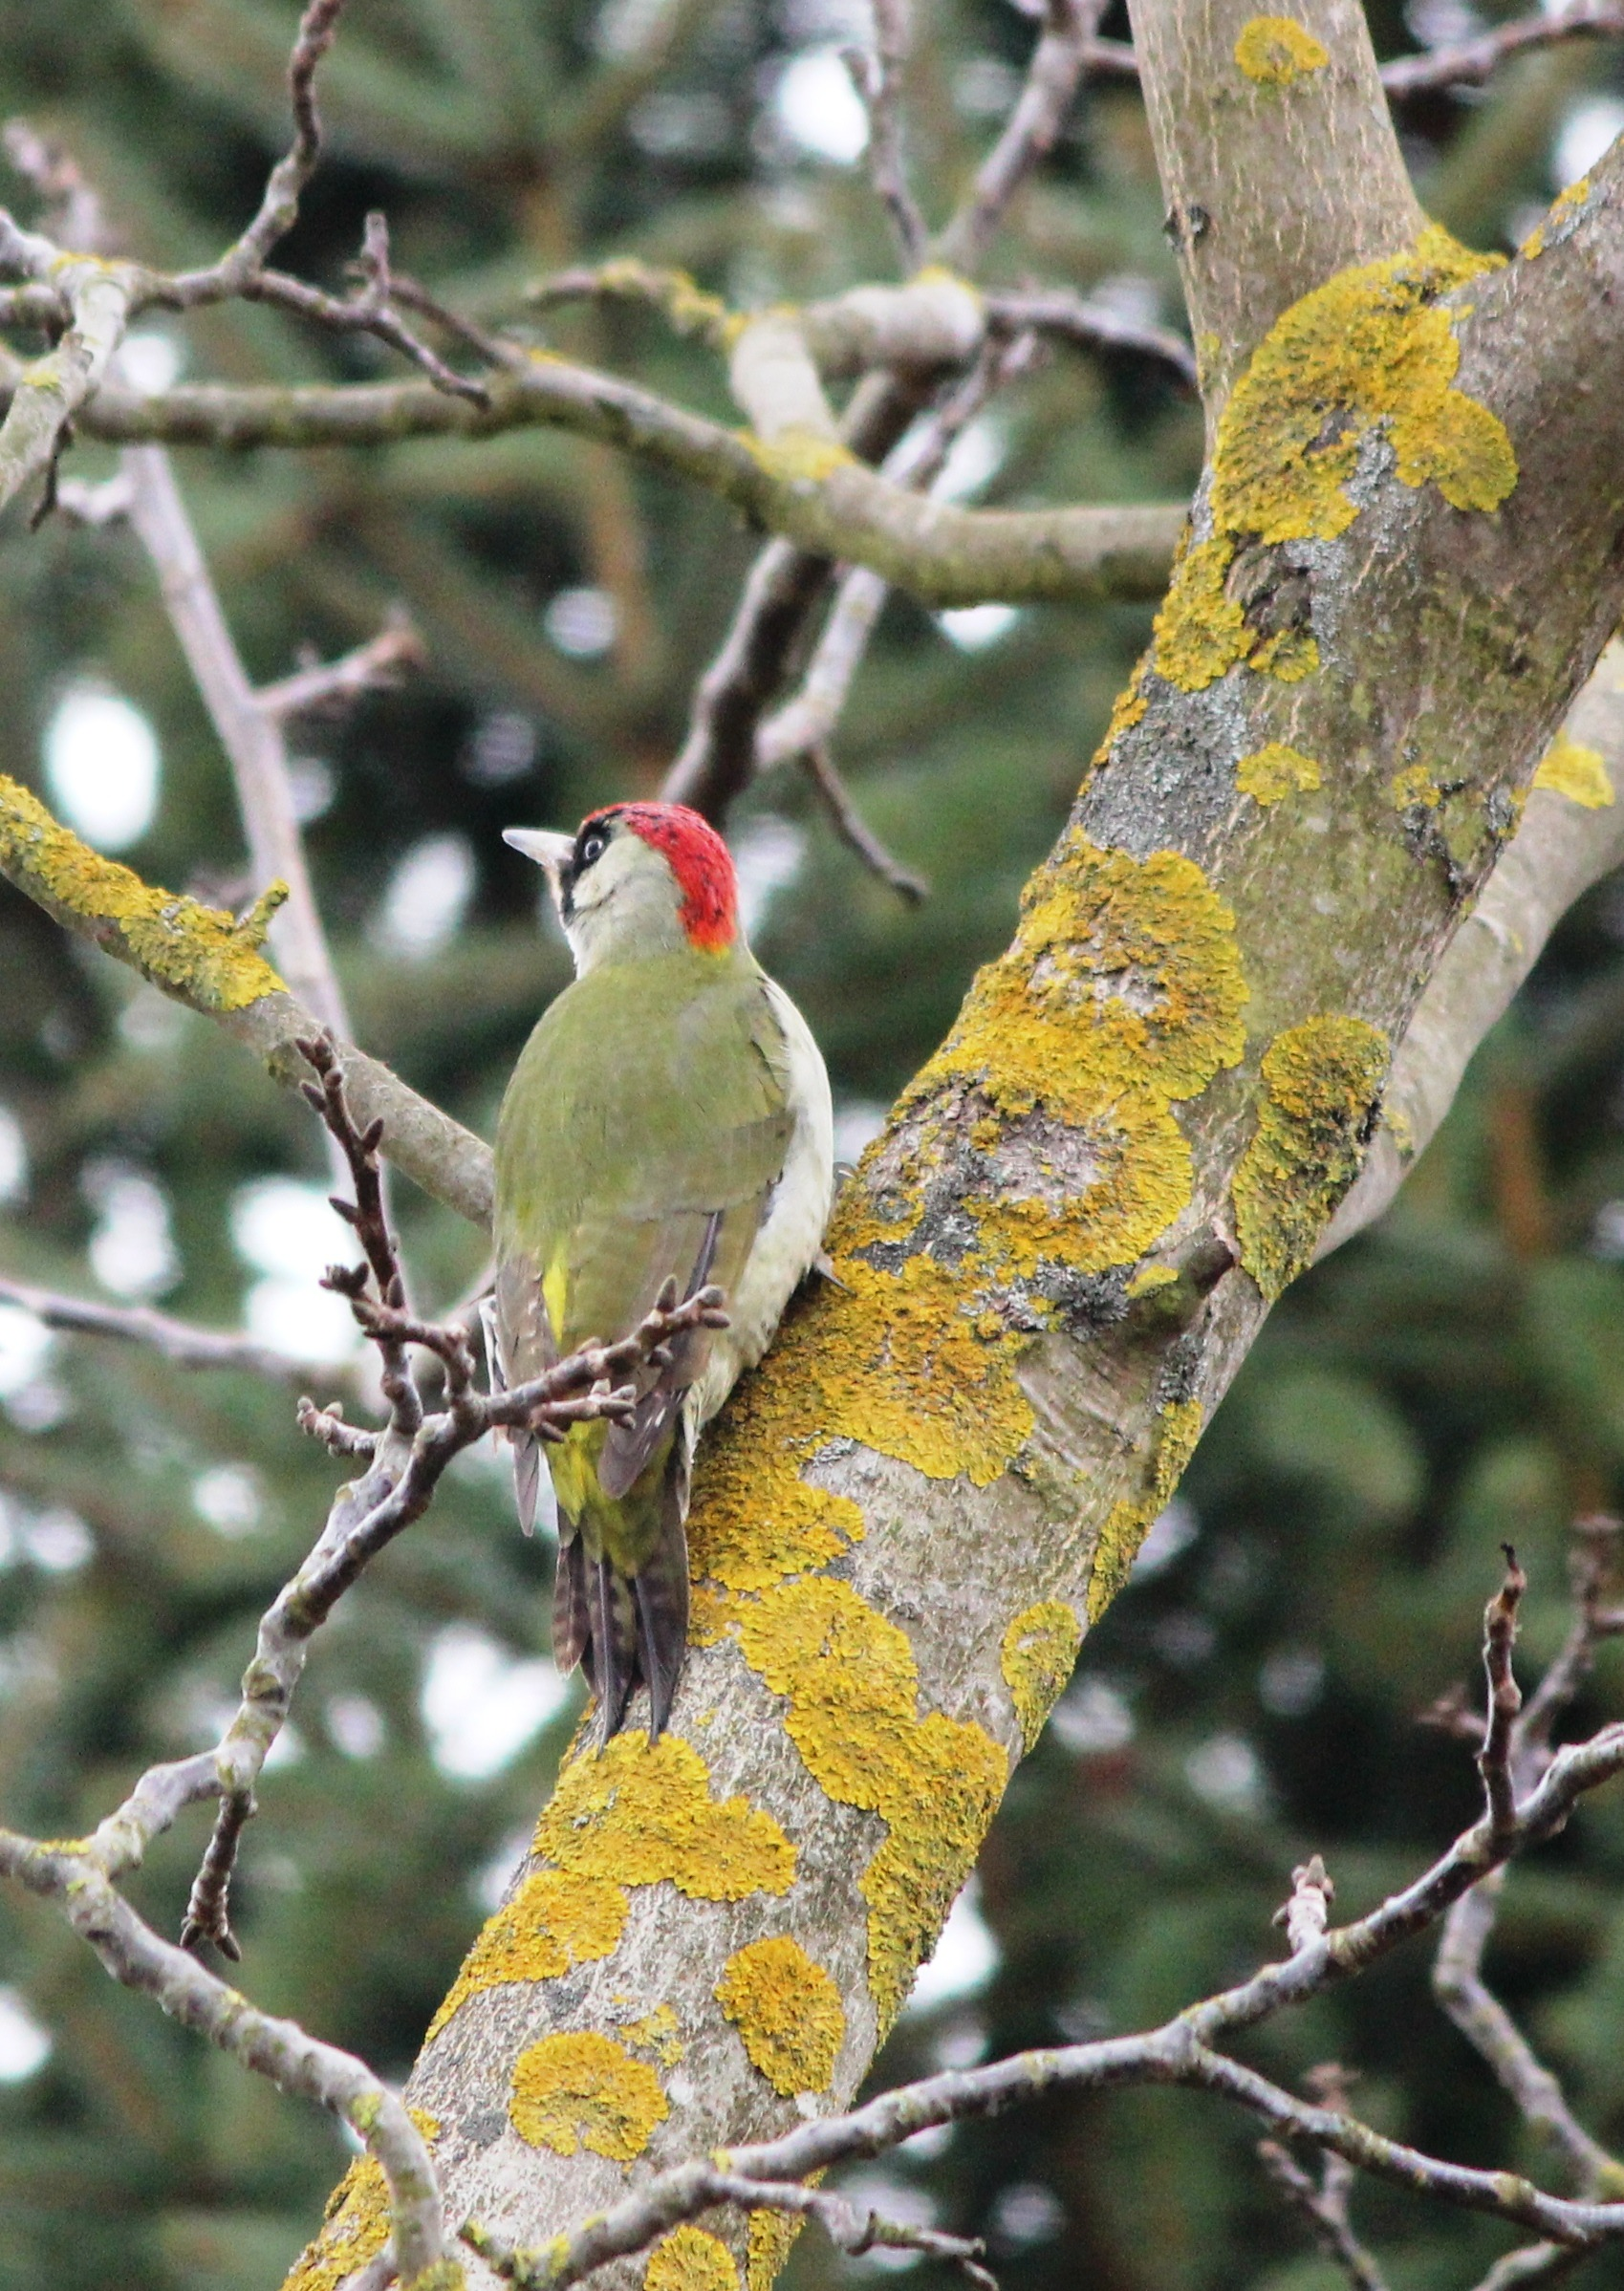 green-woodpecker-92610.jpg